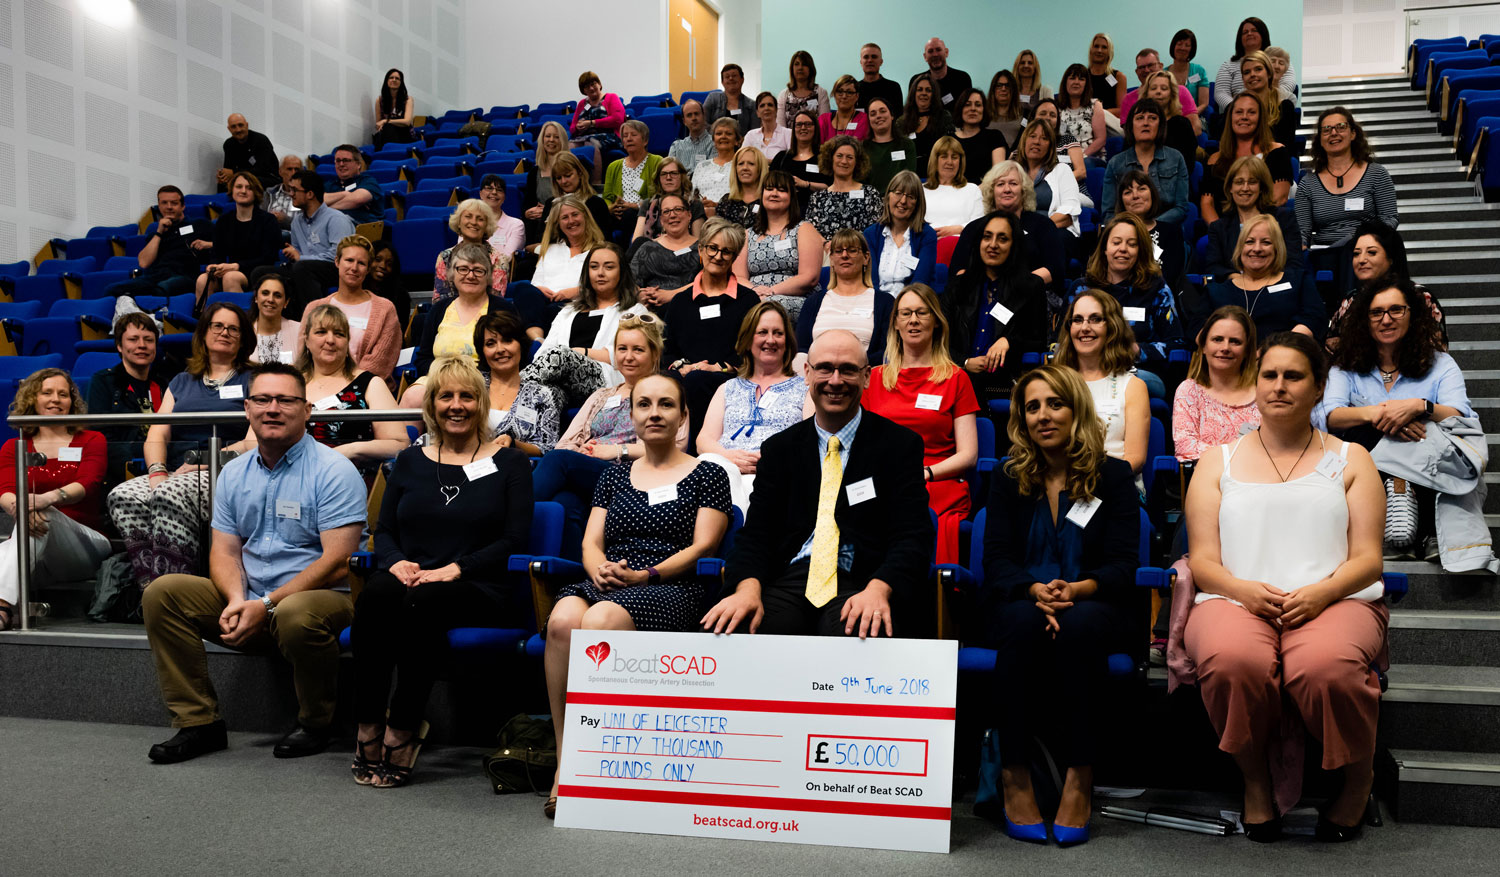 Conference delegates with cheque